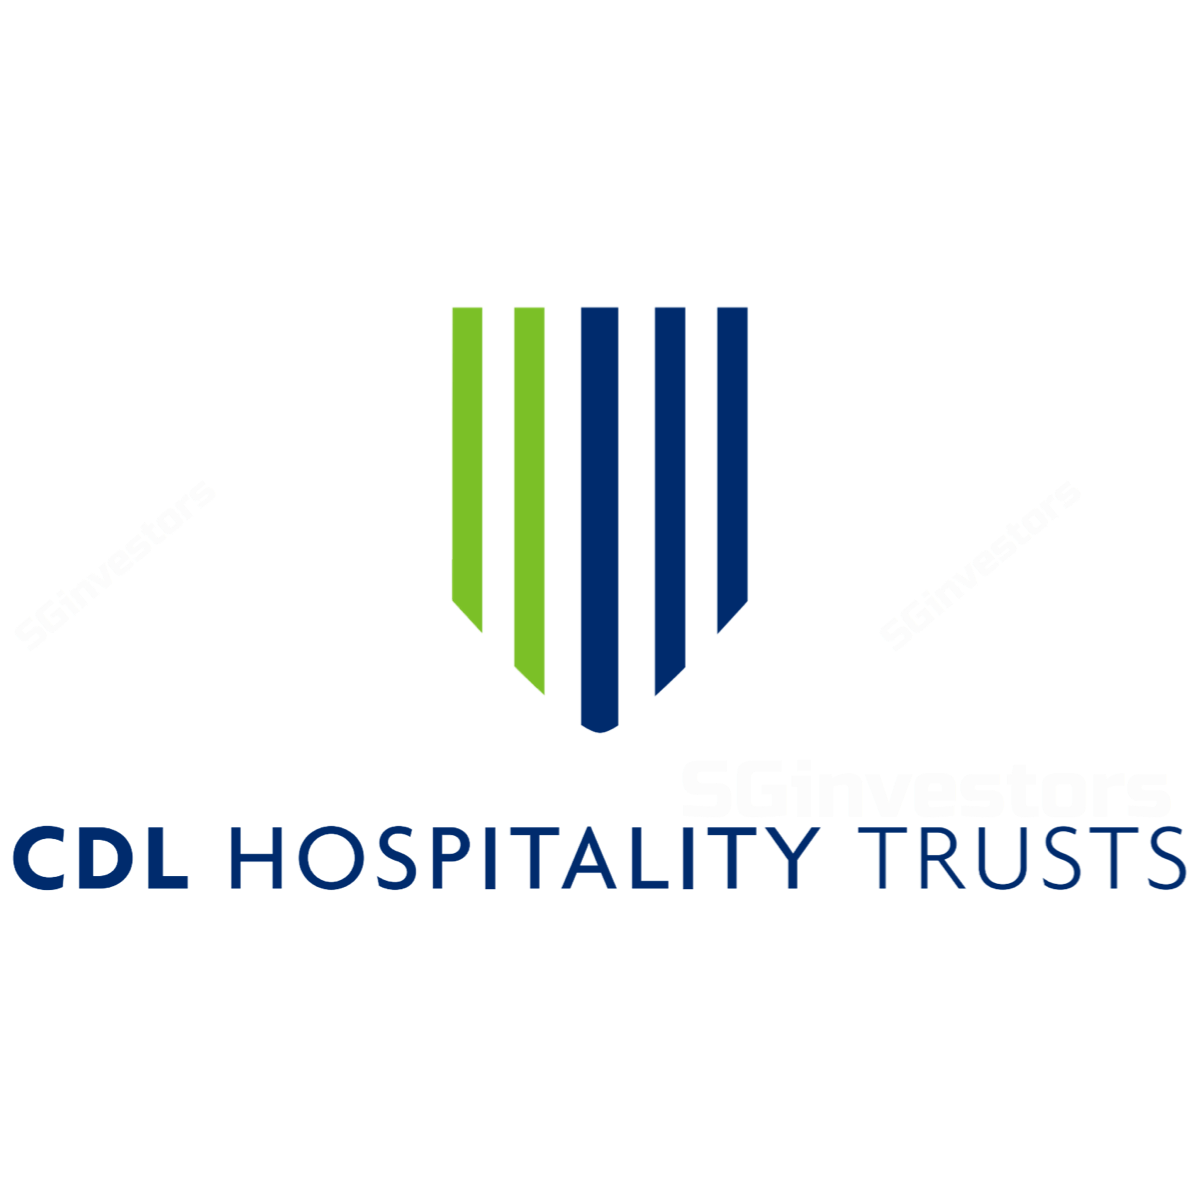 CDL Hospitality Trusts - DBS Vickers 2017-10-30: The Ace In Your Portfolio